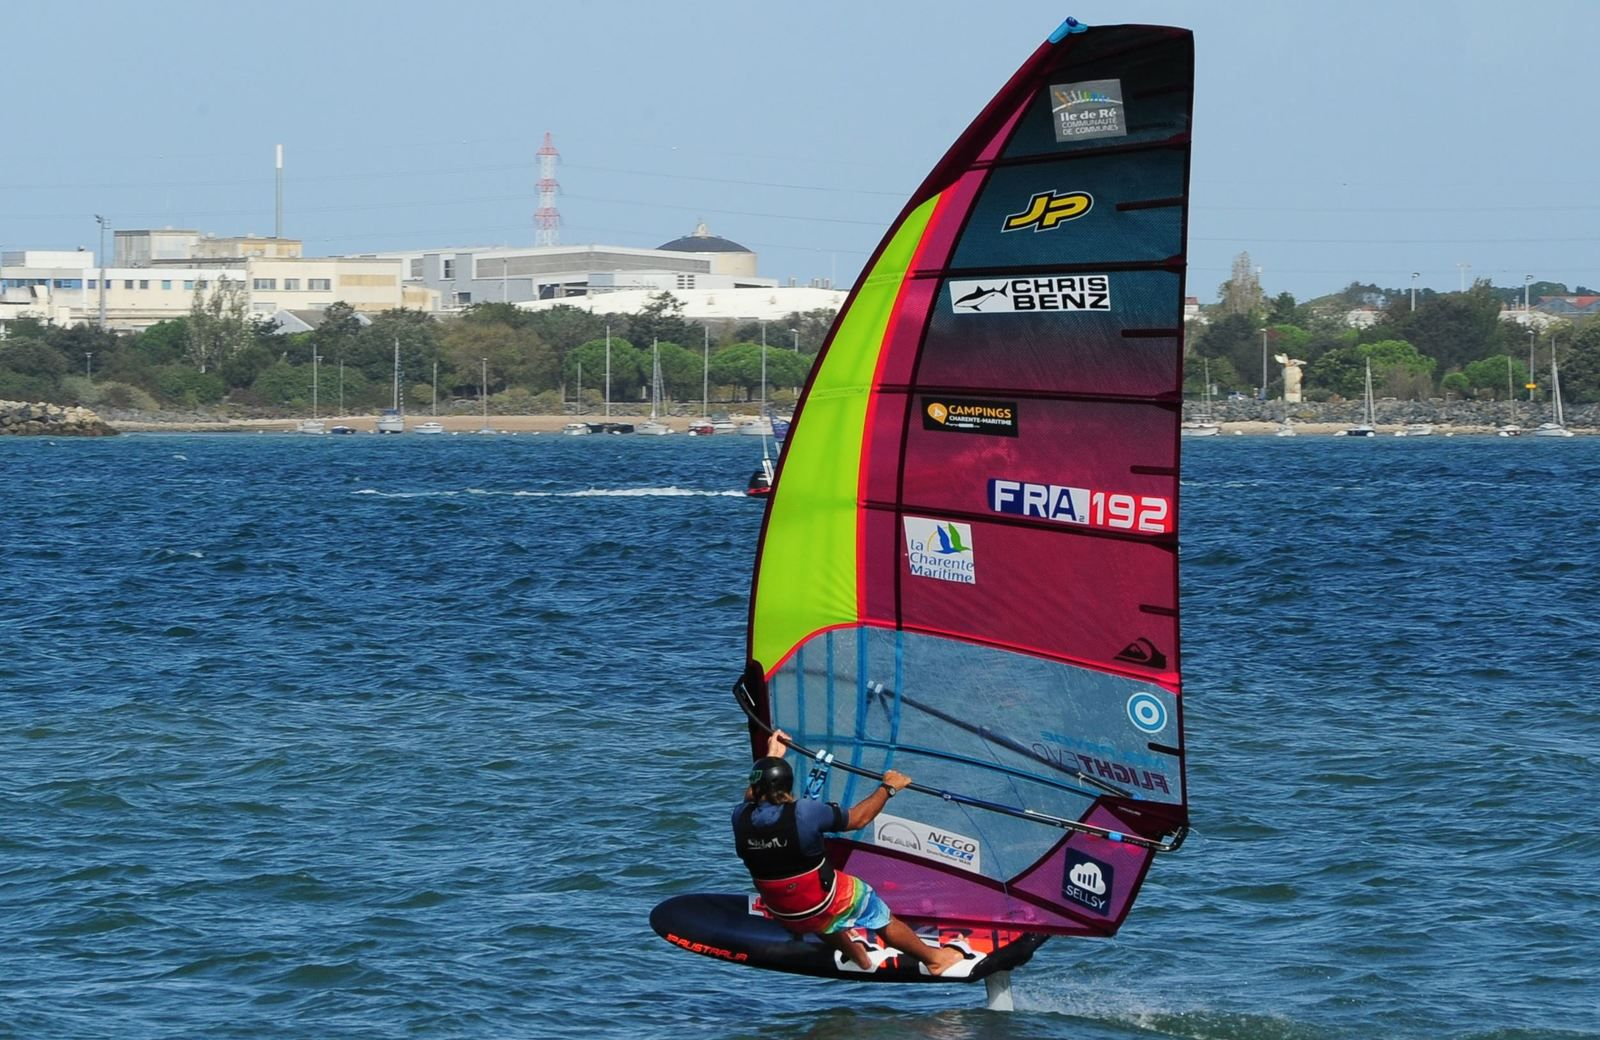 Grand Pavois 2020 - 100 participants expected for the National Windfoil!